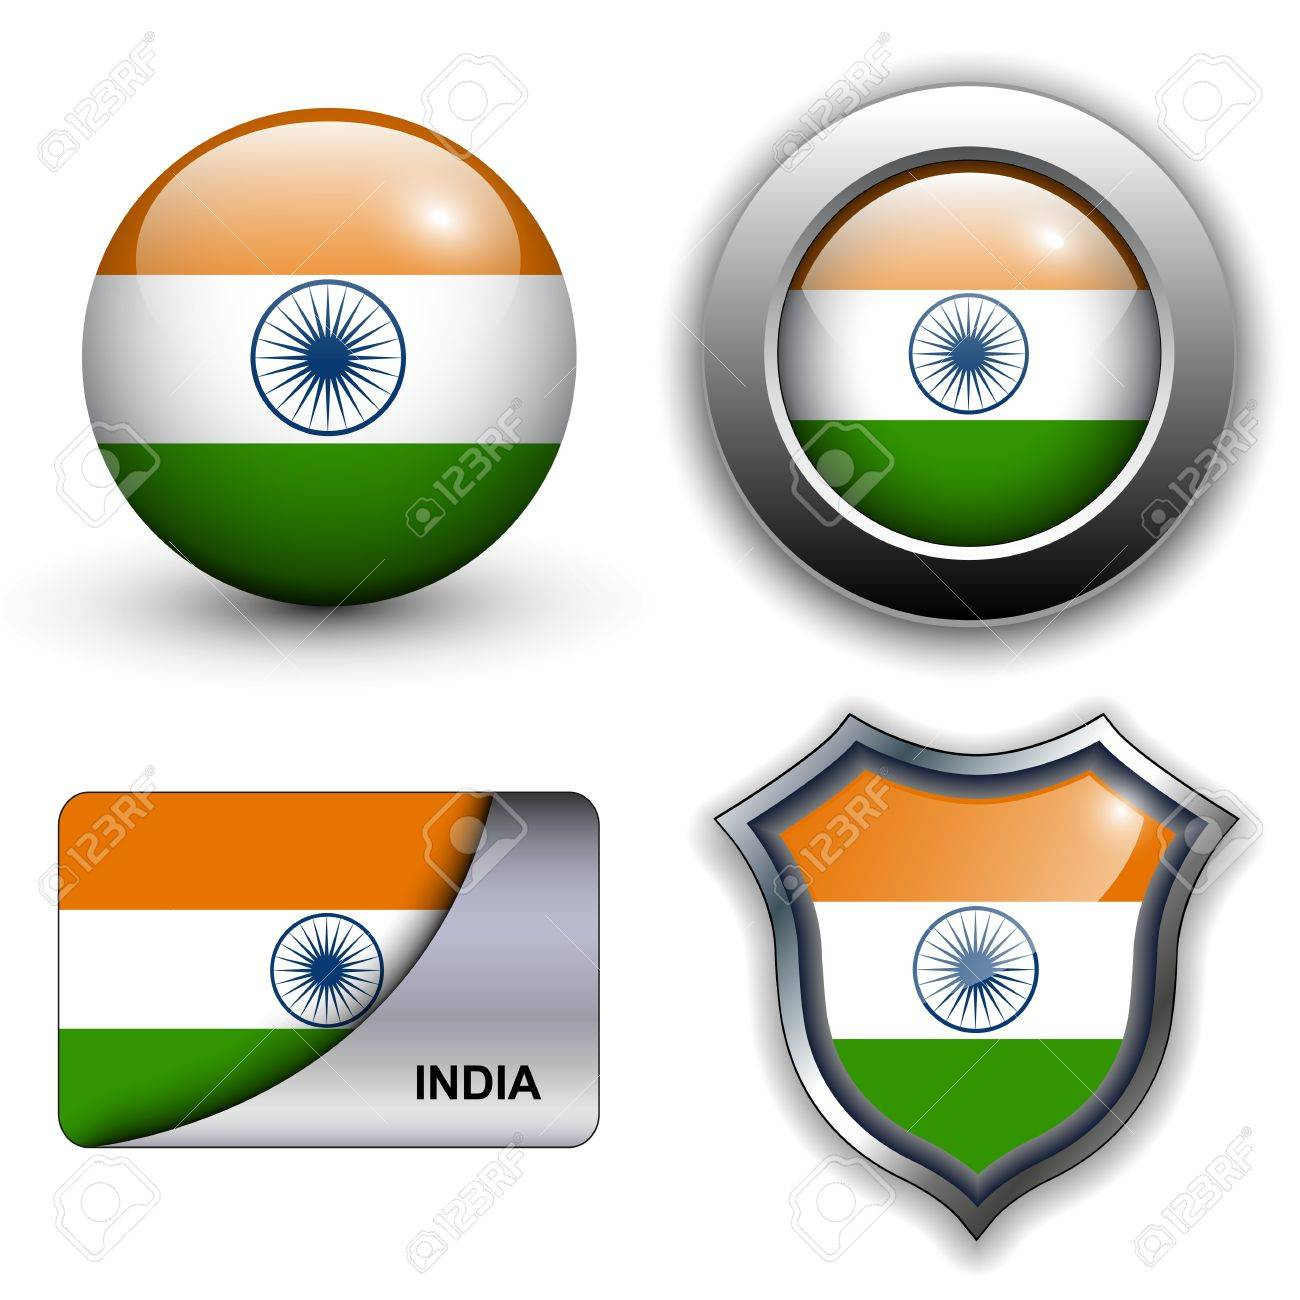 emblem of india images u0026 stock pictures royalty free emblem of